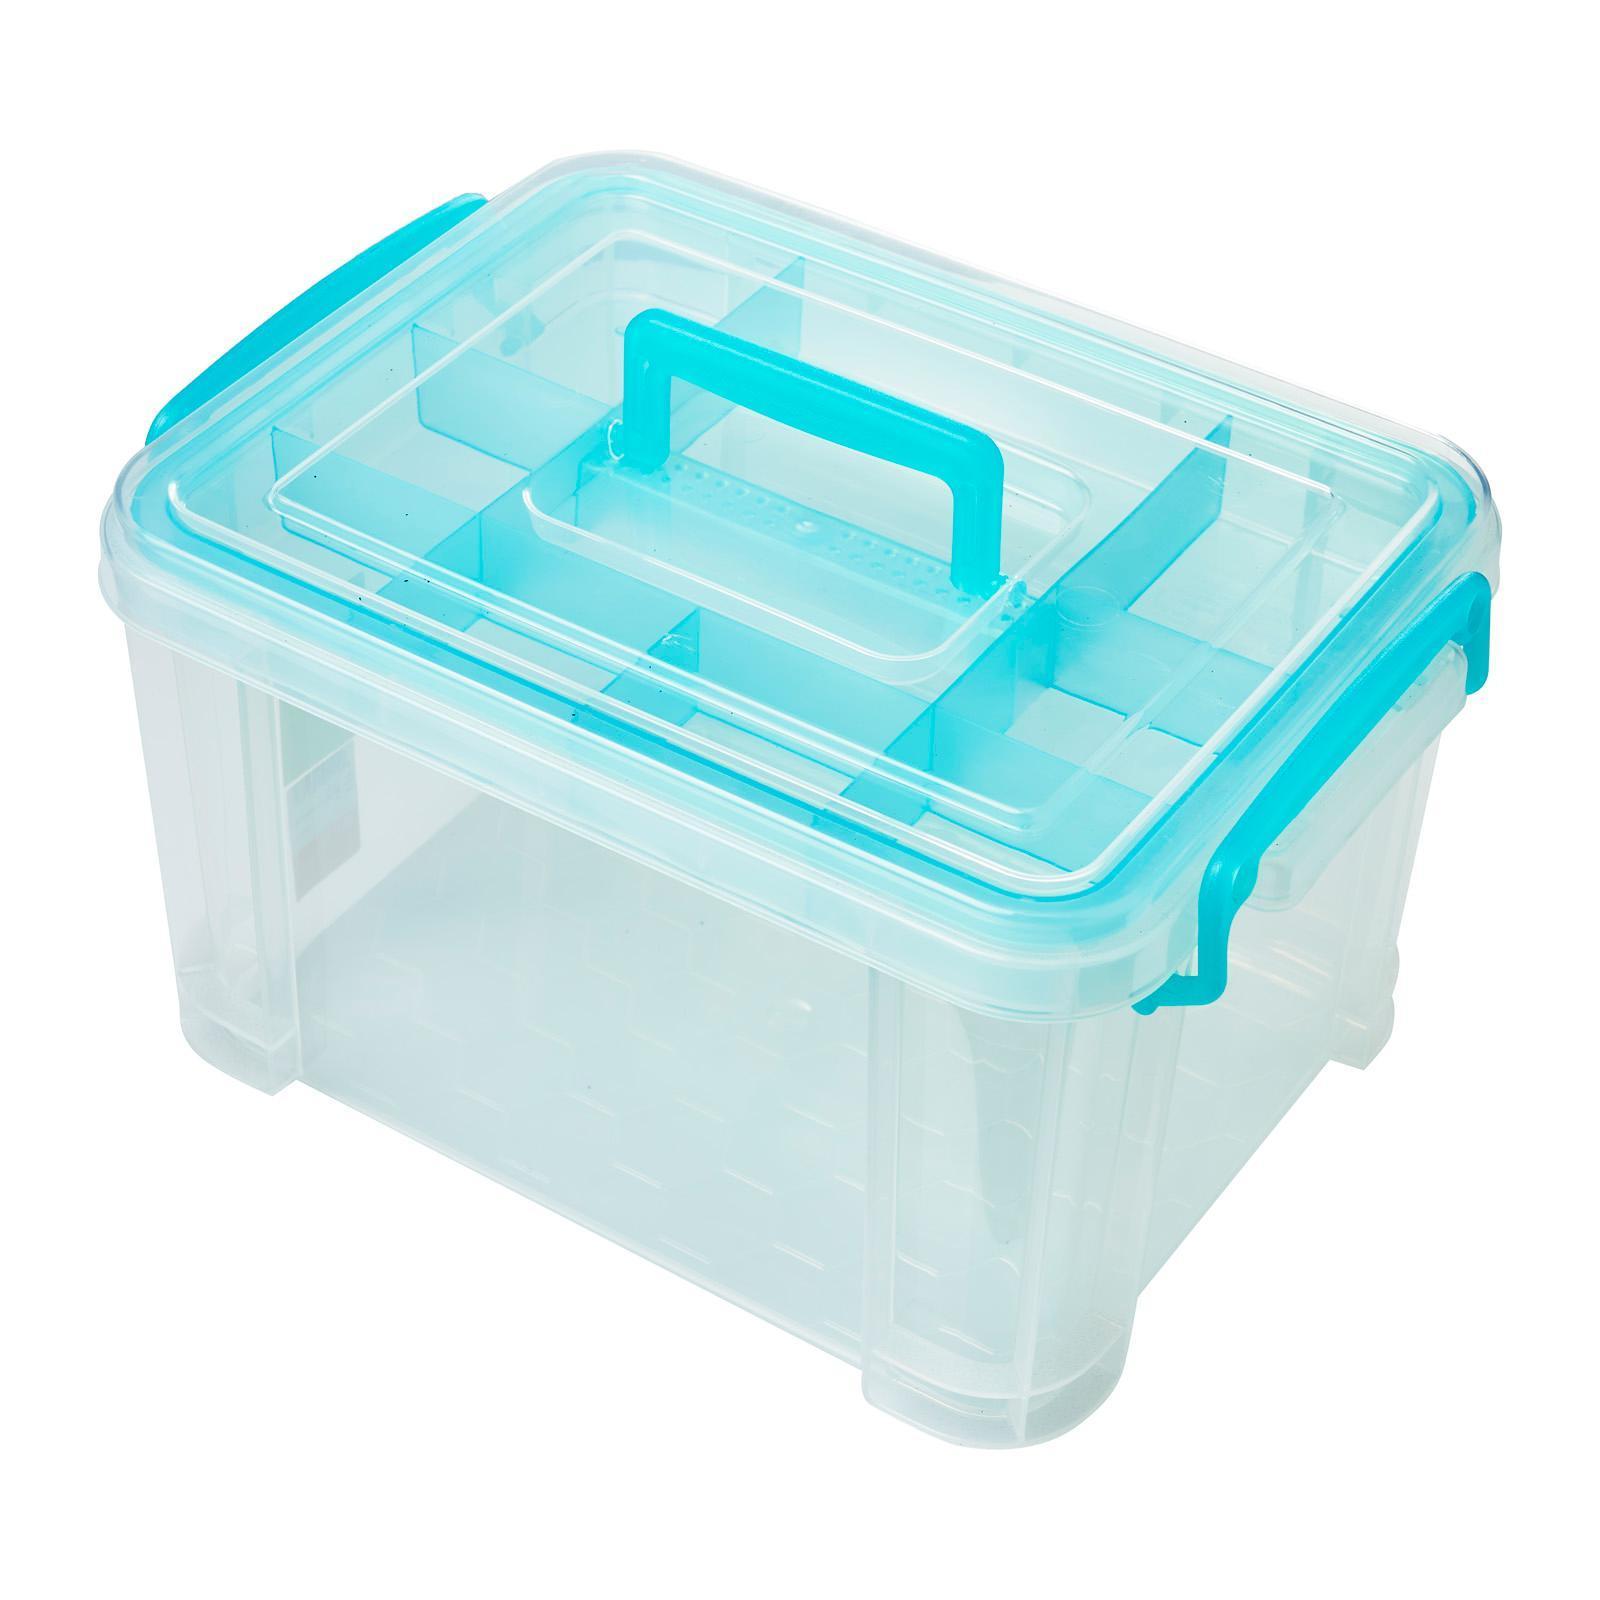 Citylife 8L Storage Box with Partition